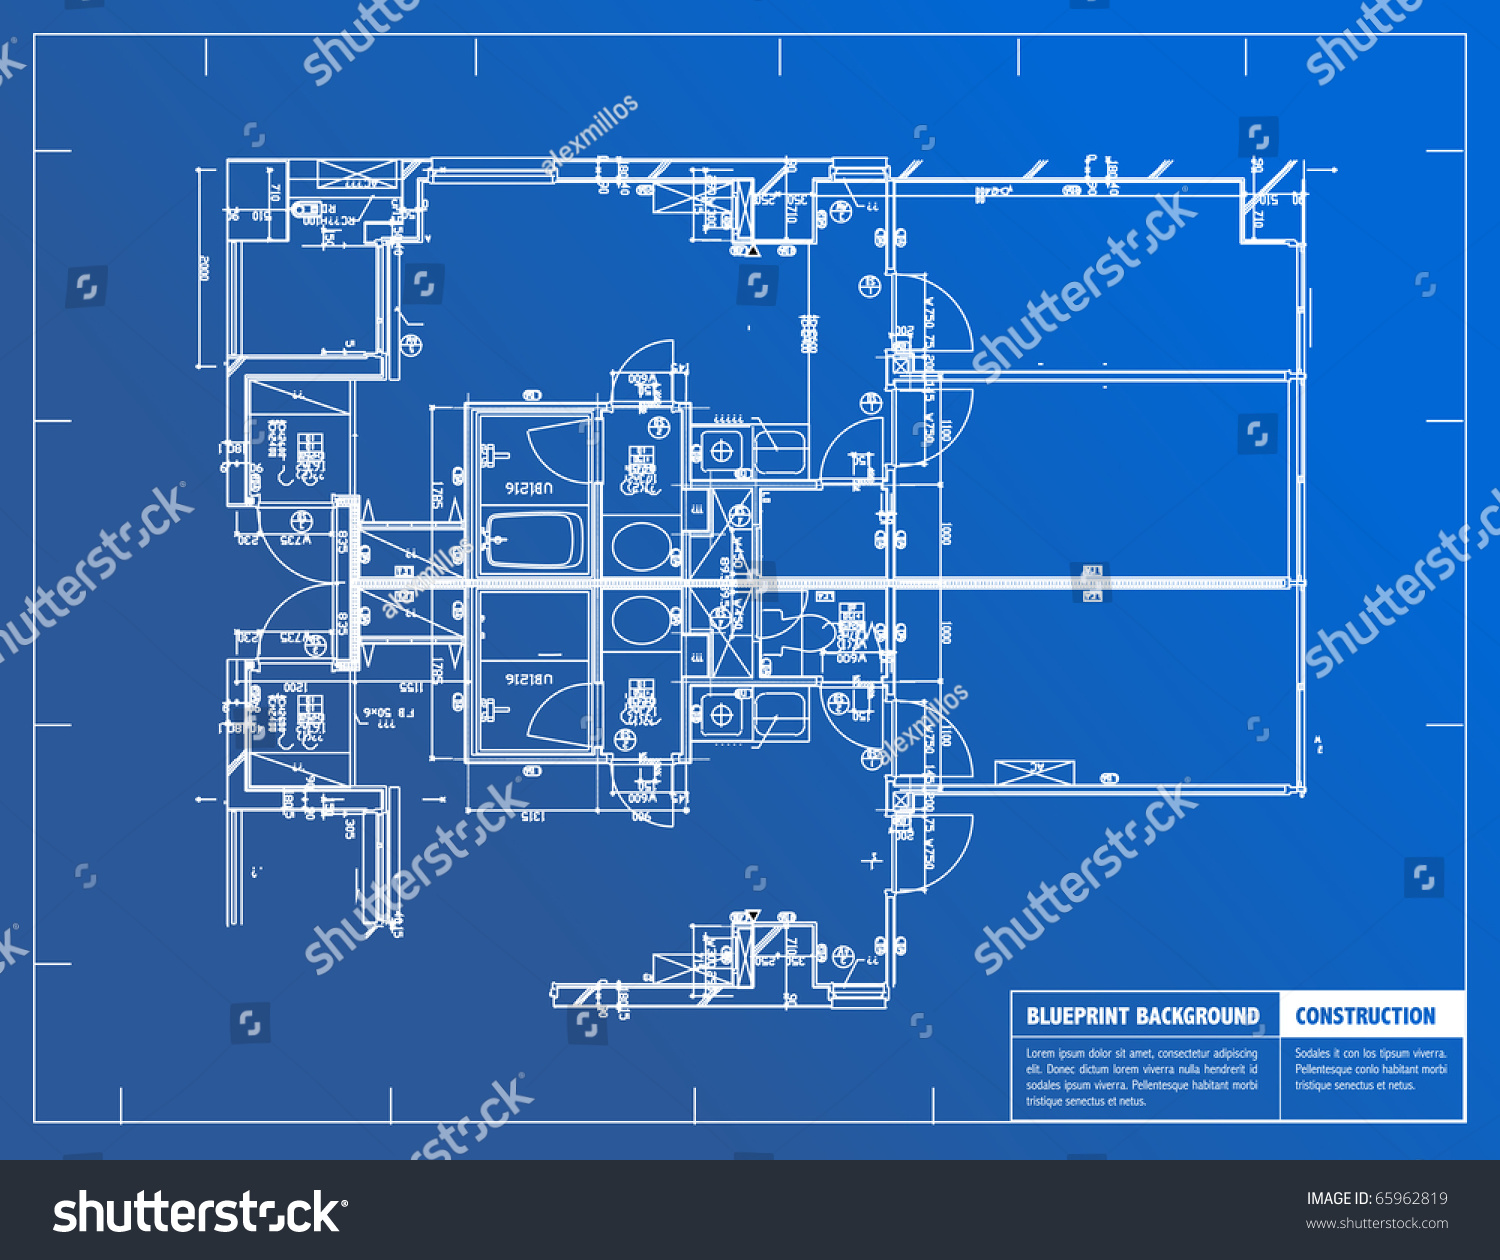 Sample architectural blueprints over blue background stock for Architecture design blueprint